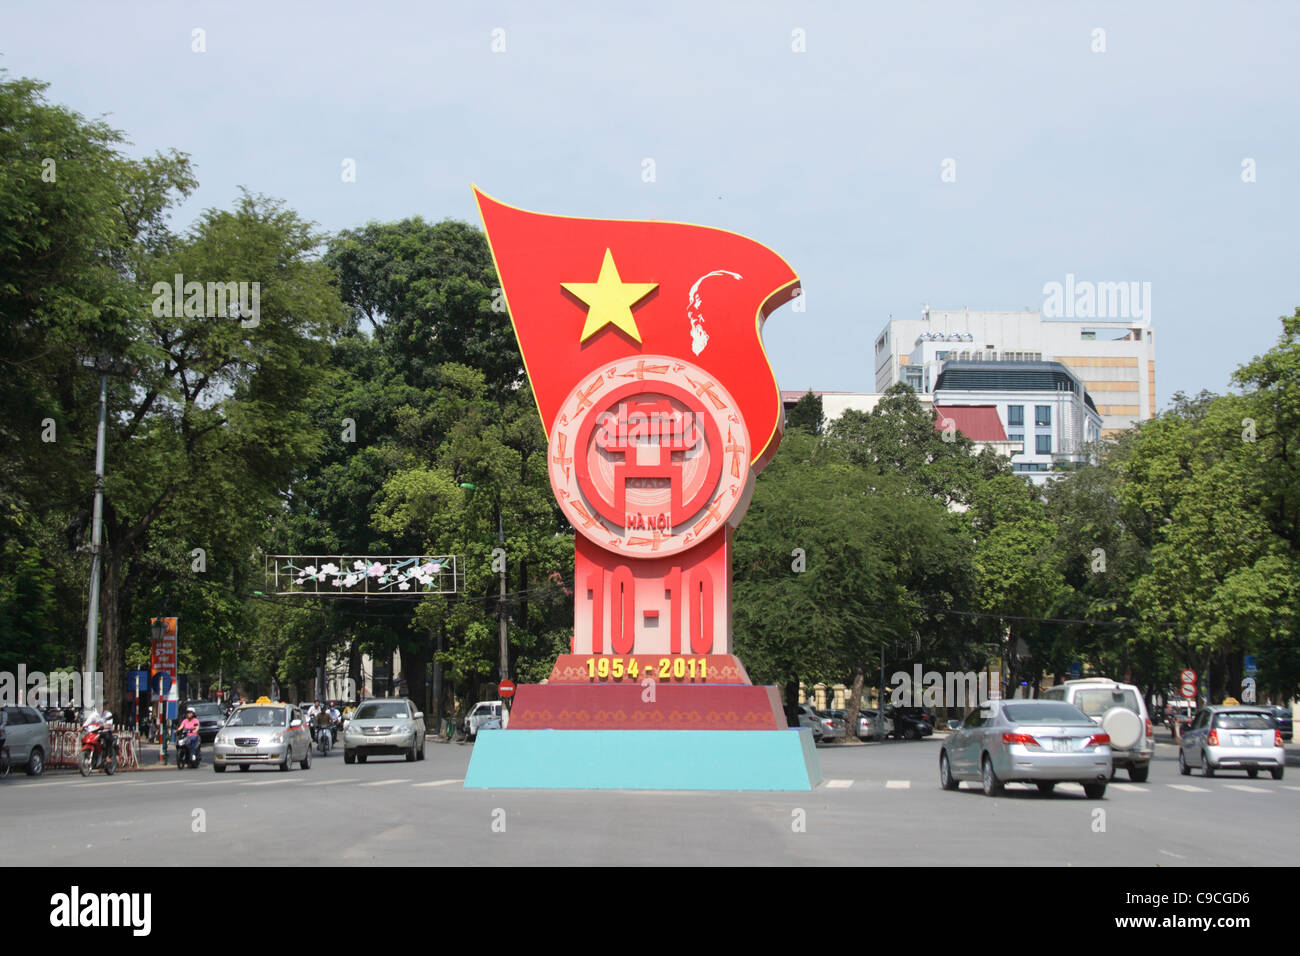 monument at a busy street to commemorate 57th anniversary of Hanoi's Liberation Day (October 10, 1954-2011) - Stock Image